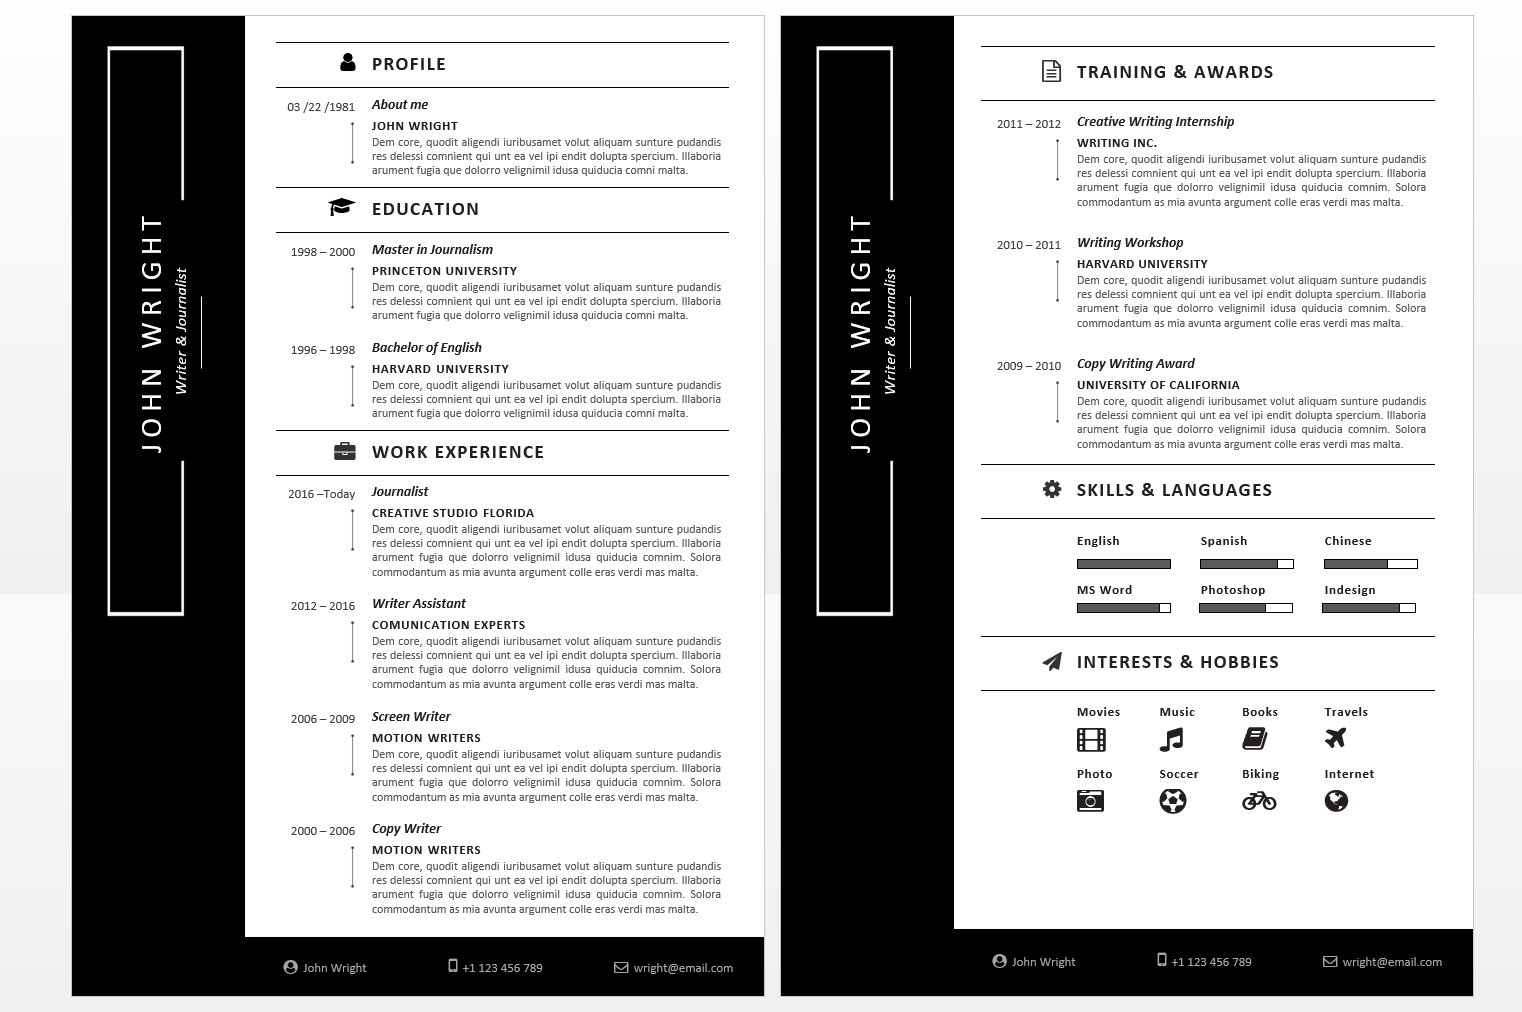 Microsoft Office Resumes John Wright Resume Template With